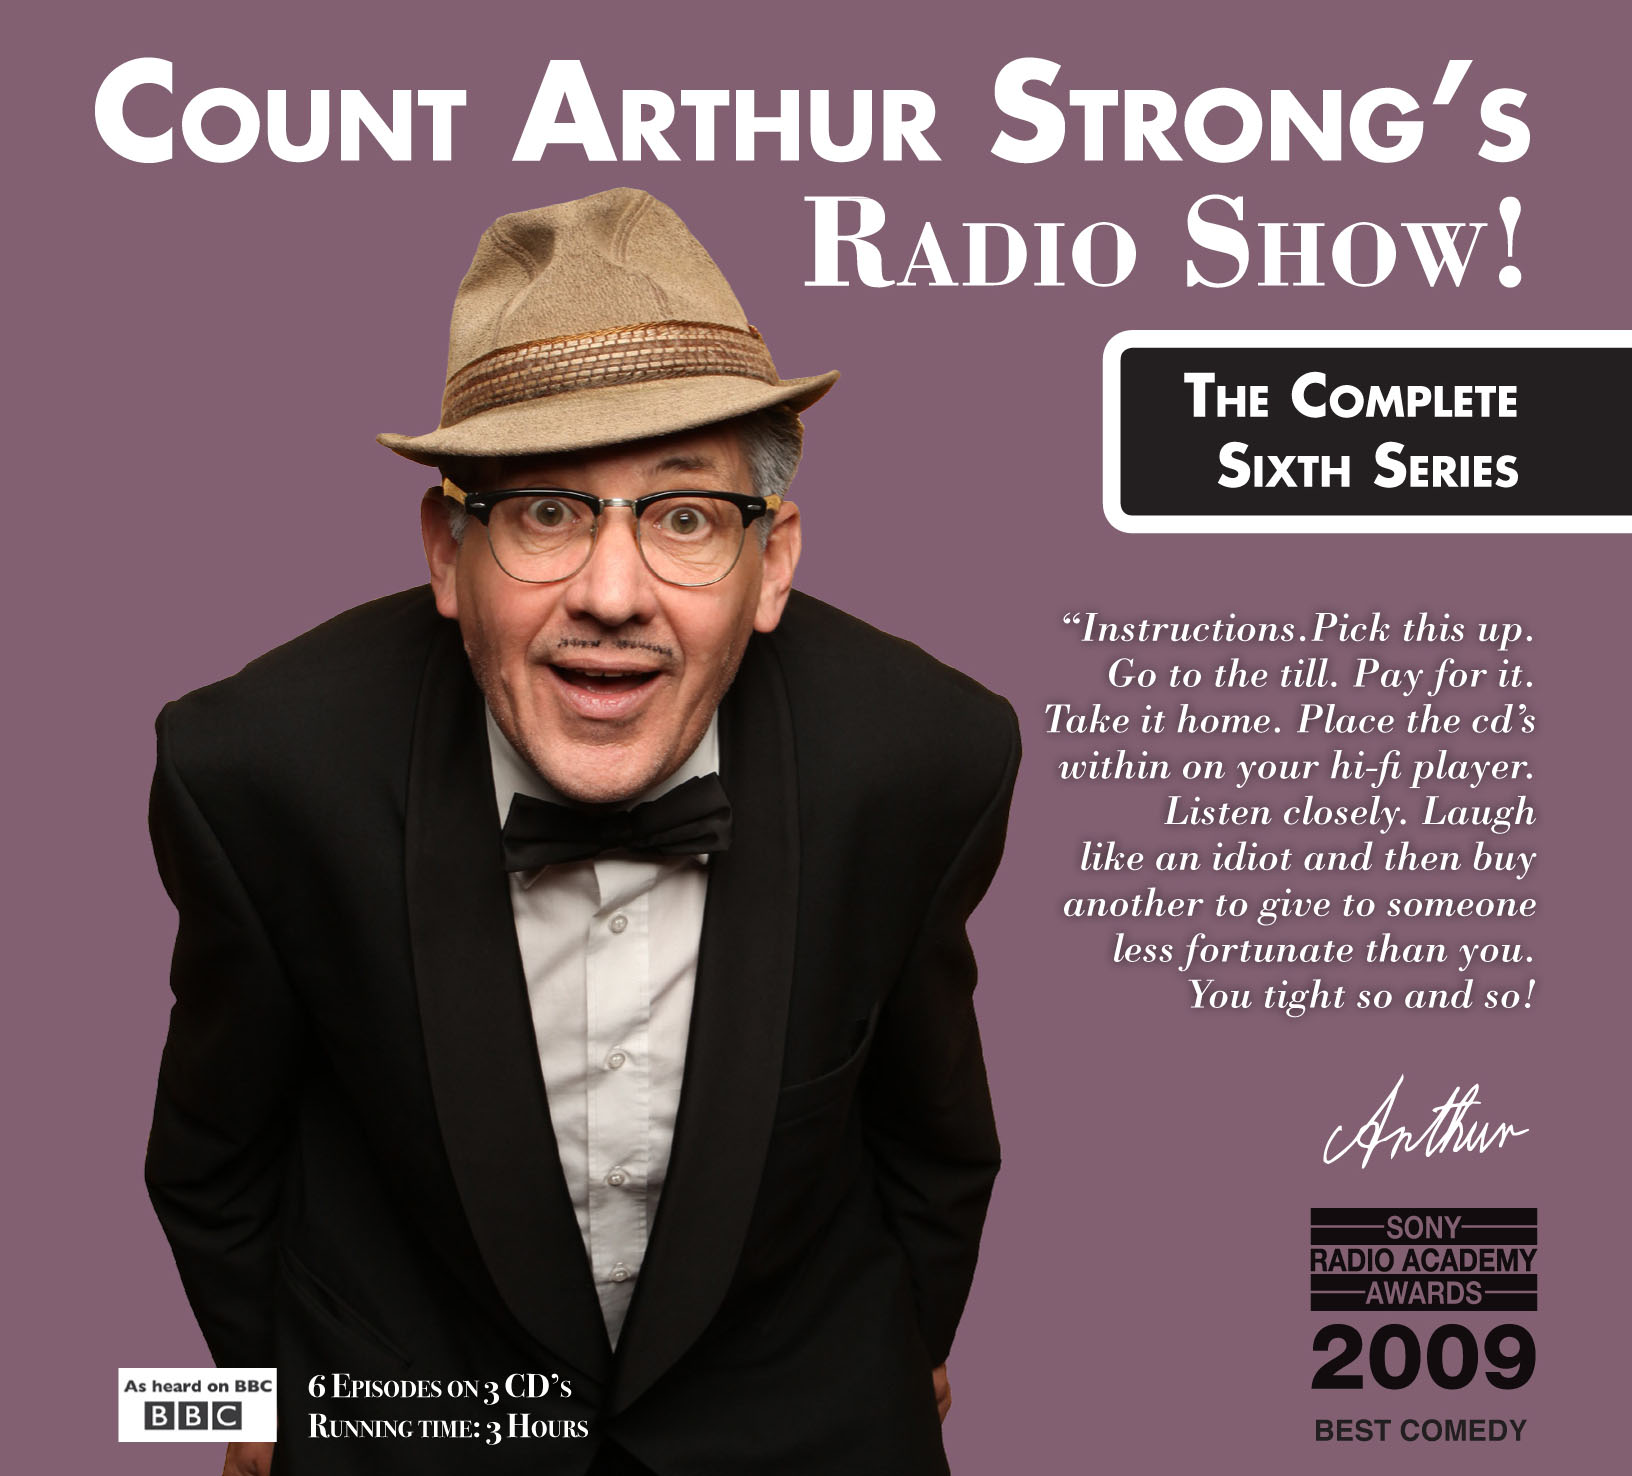 Something stupid (7 inch single) with download code | count arthur.